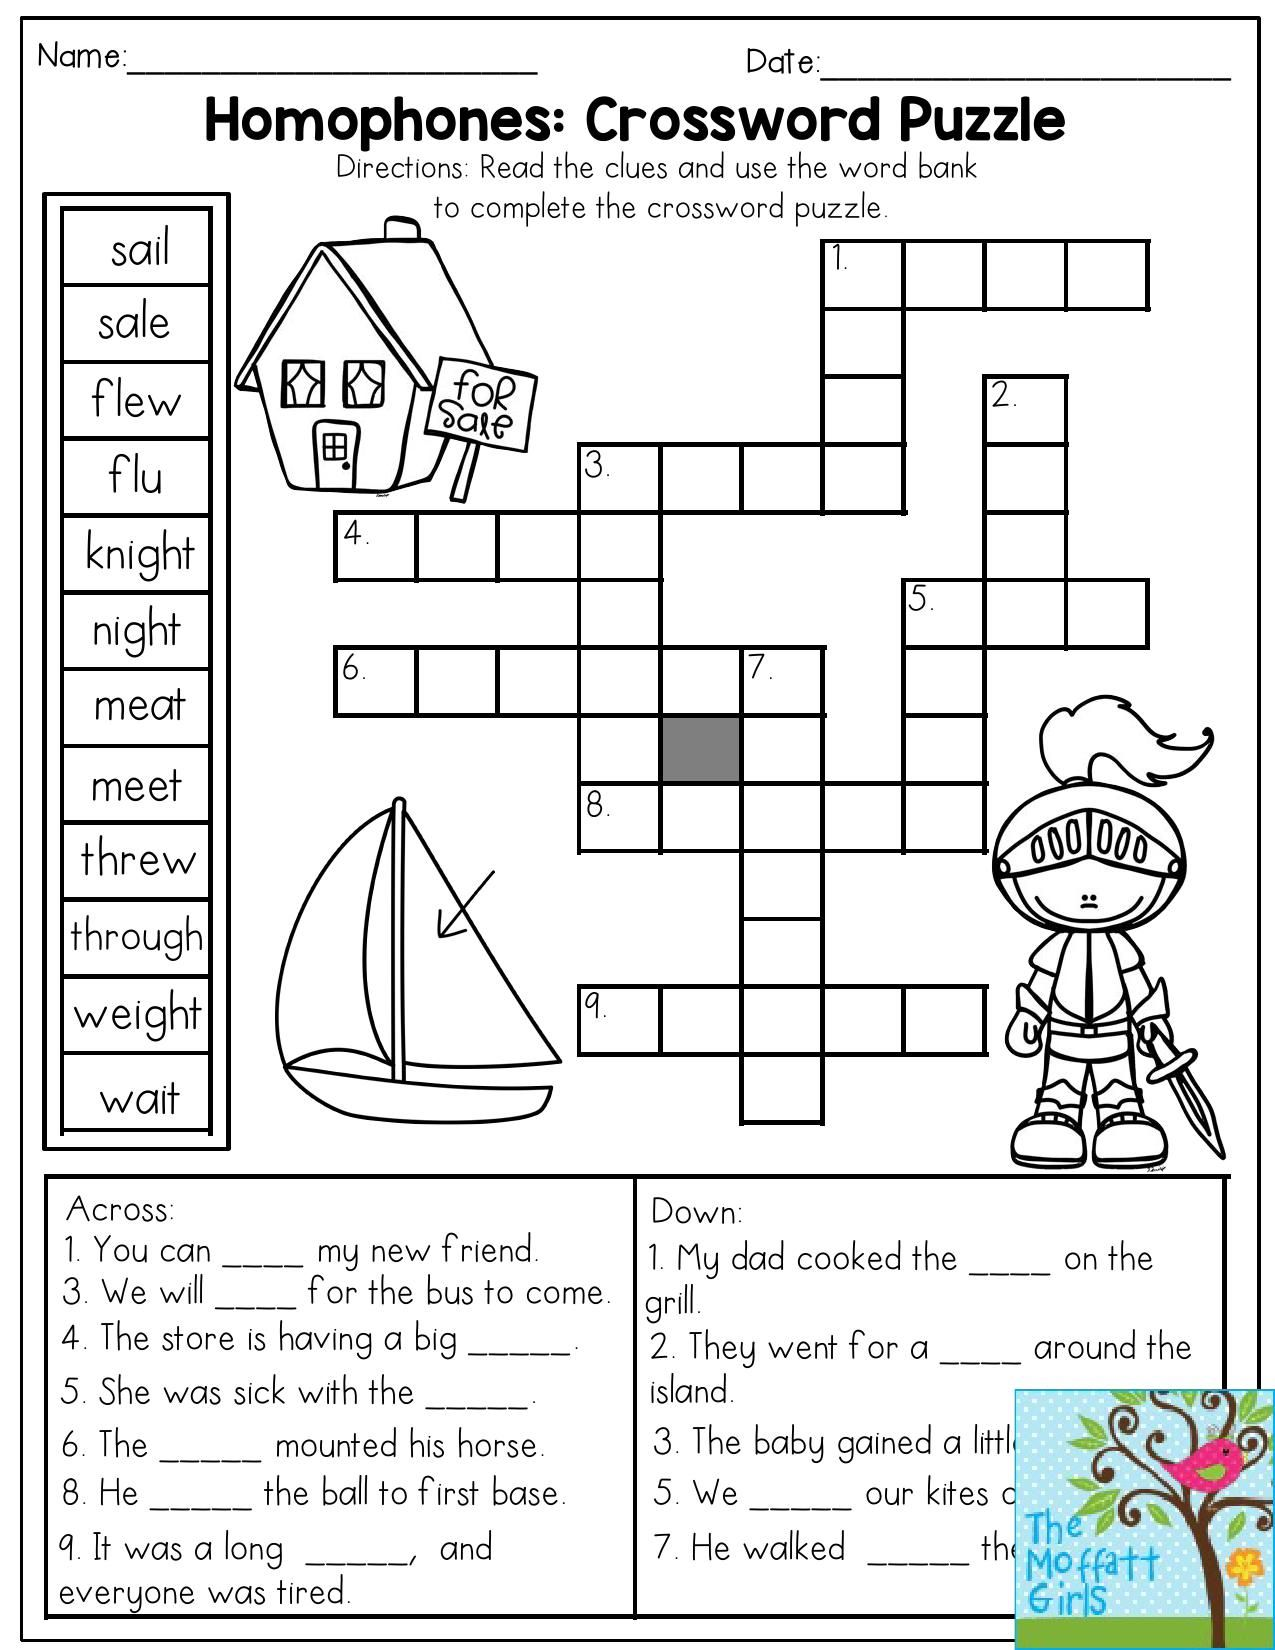 Homophones: Crossword Puzzle- Read the clues and use the word bank